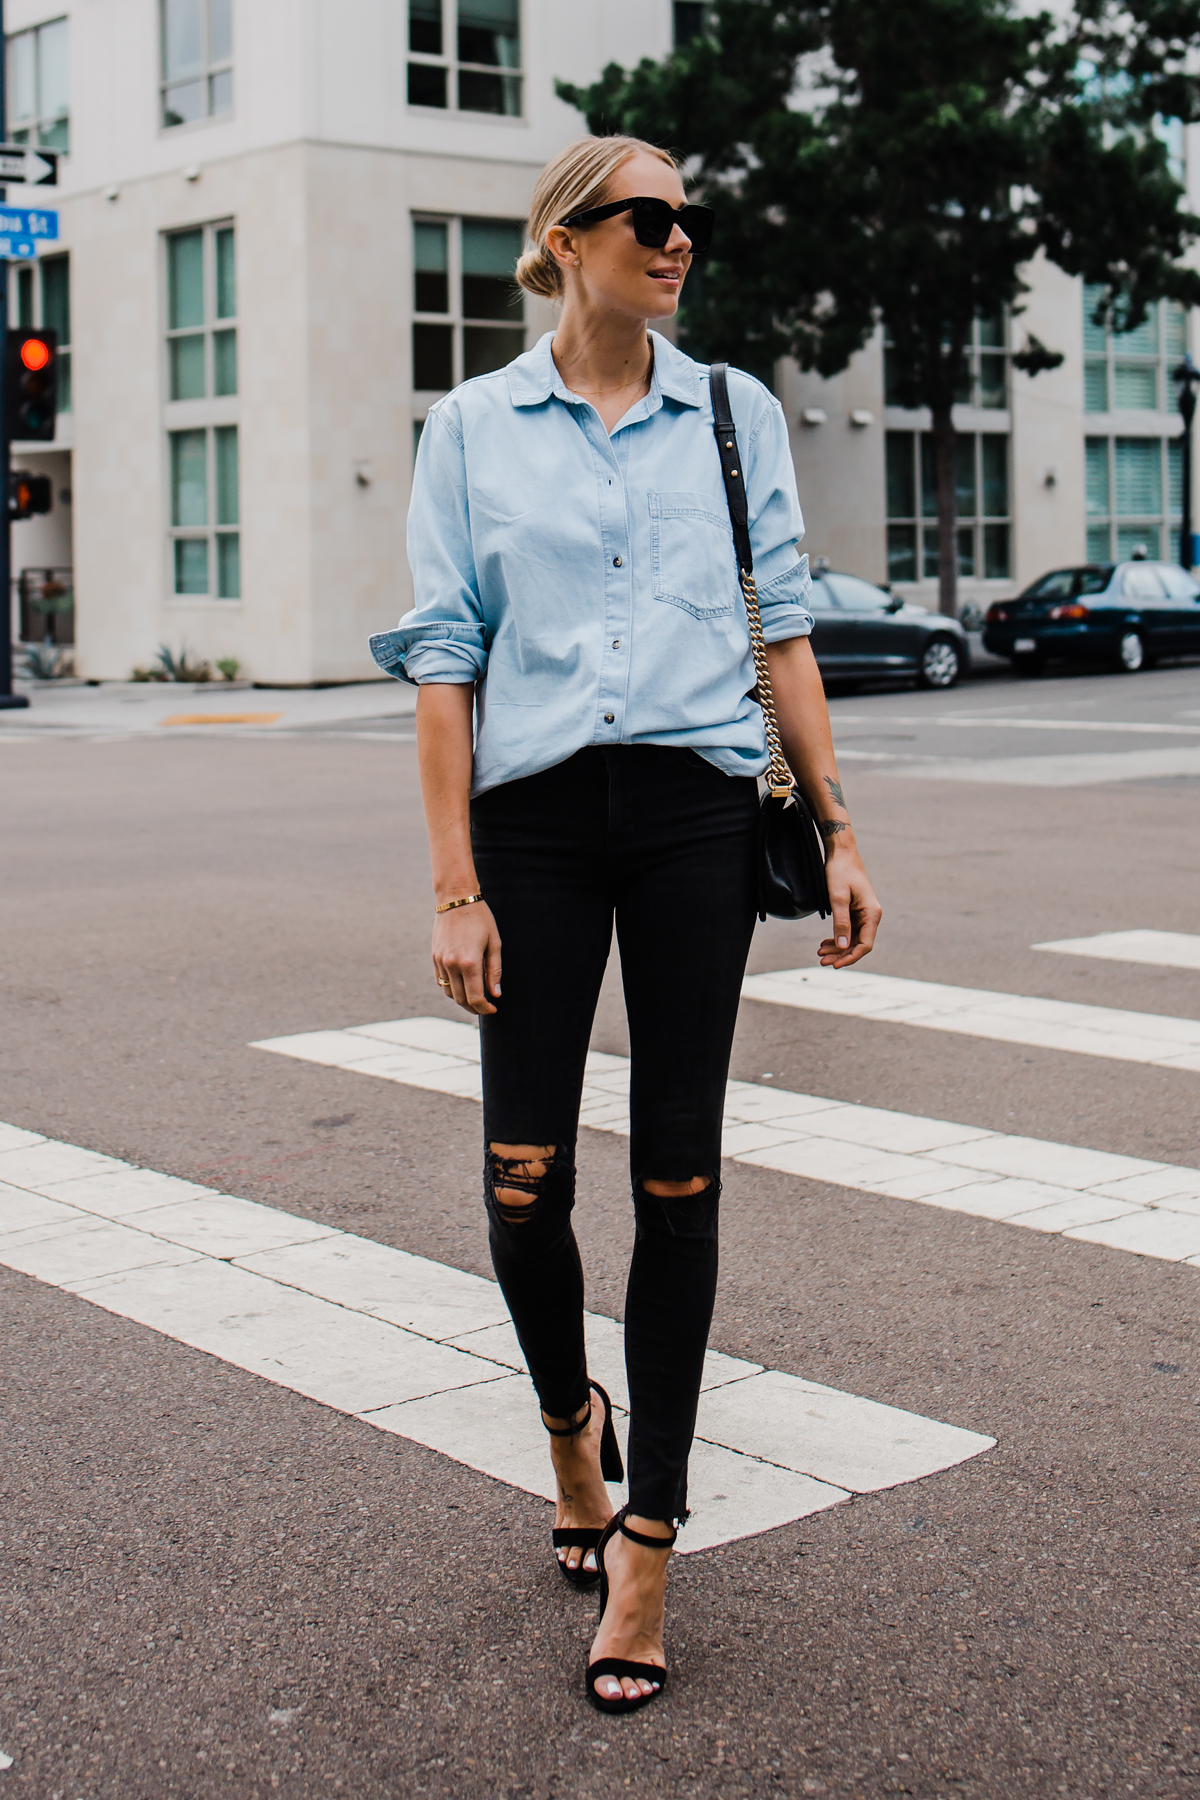 973a1b1a0acc Blonde Woman Wearing Topshop Oversized Denim Shirt Topshop Black Ripped  Skinny Jeans Steve Madden Black Ankle